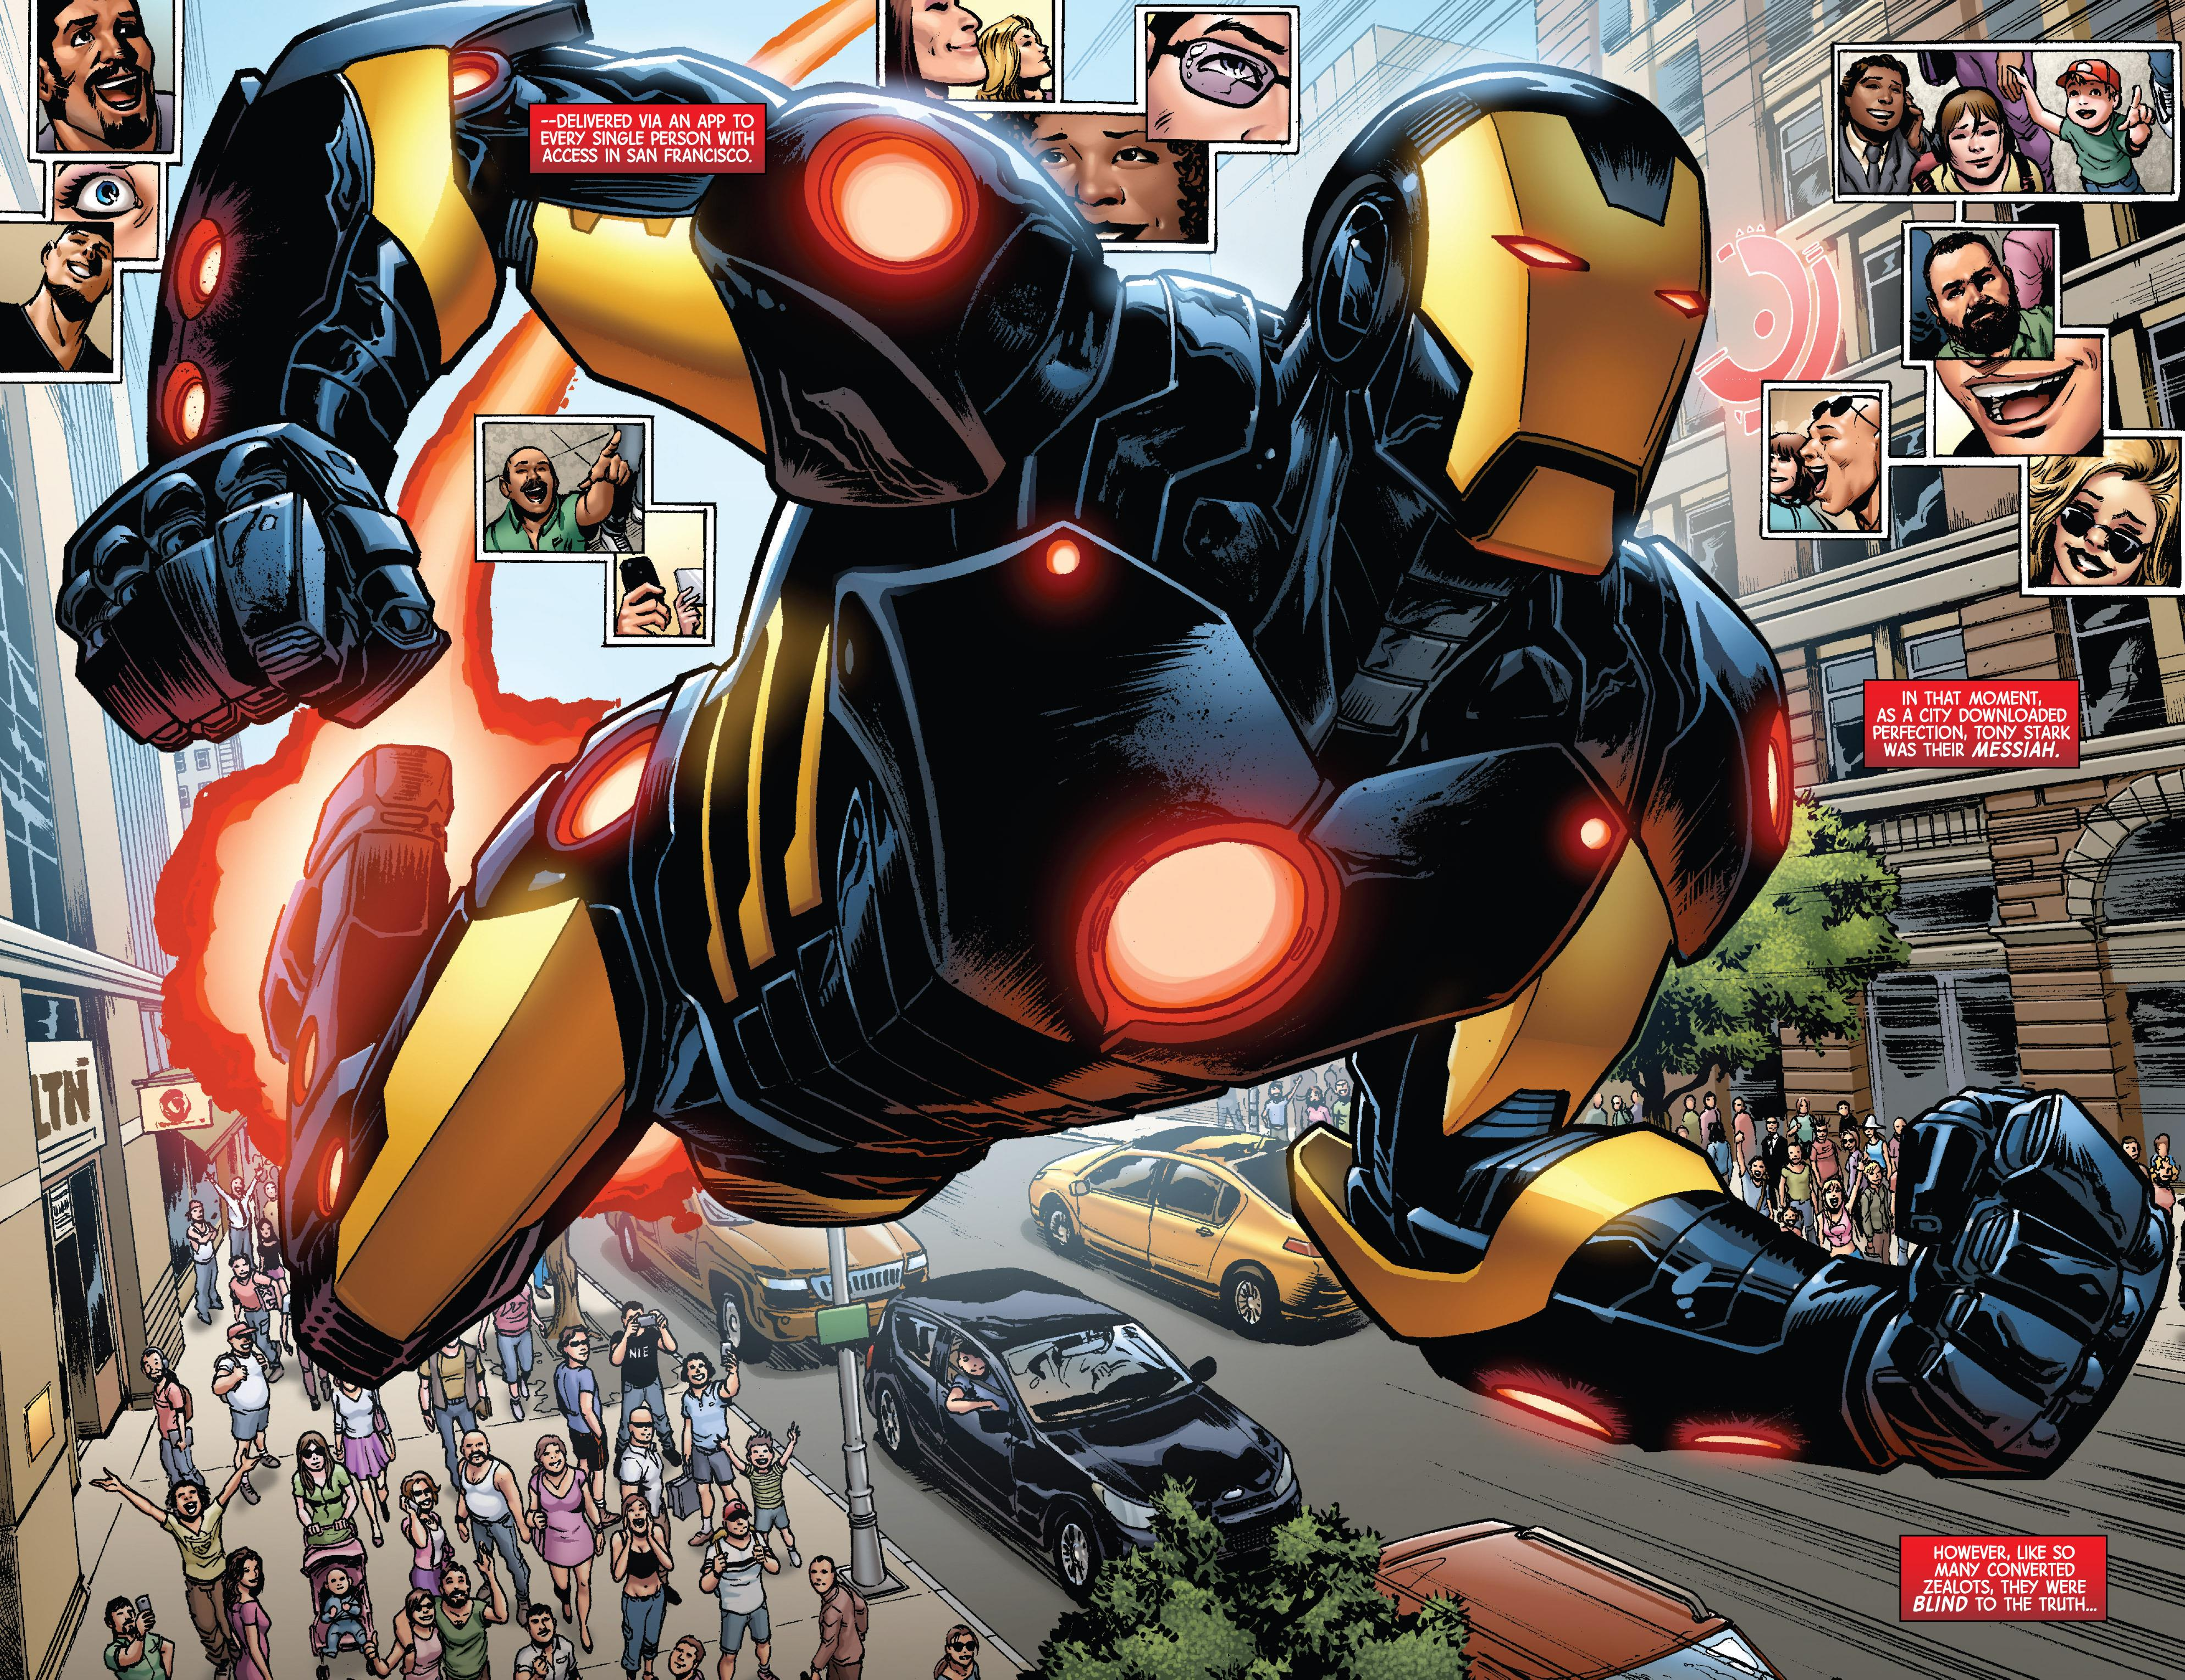 Superior Iron Man Infamous review